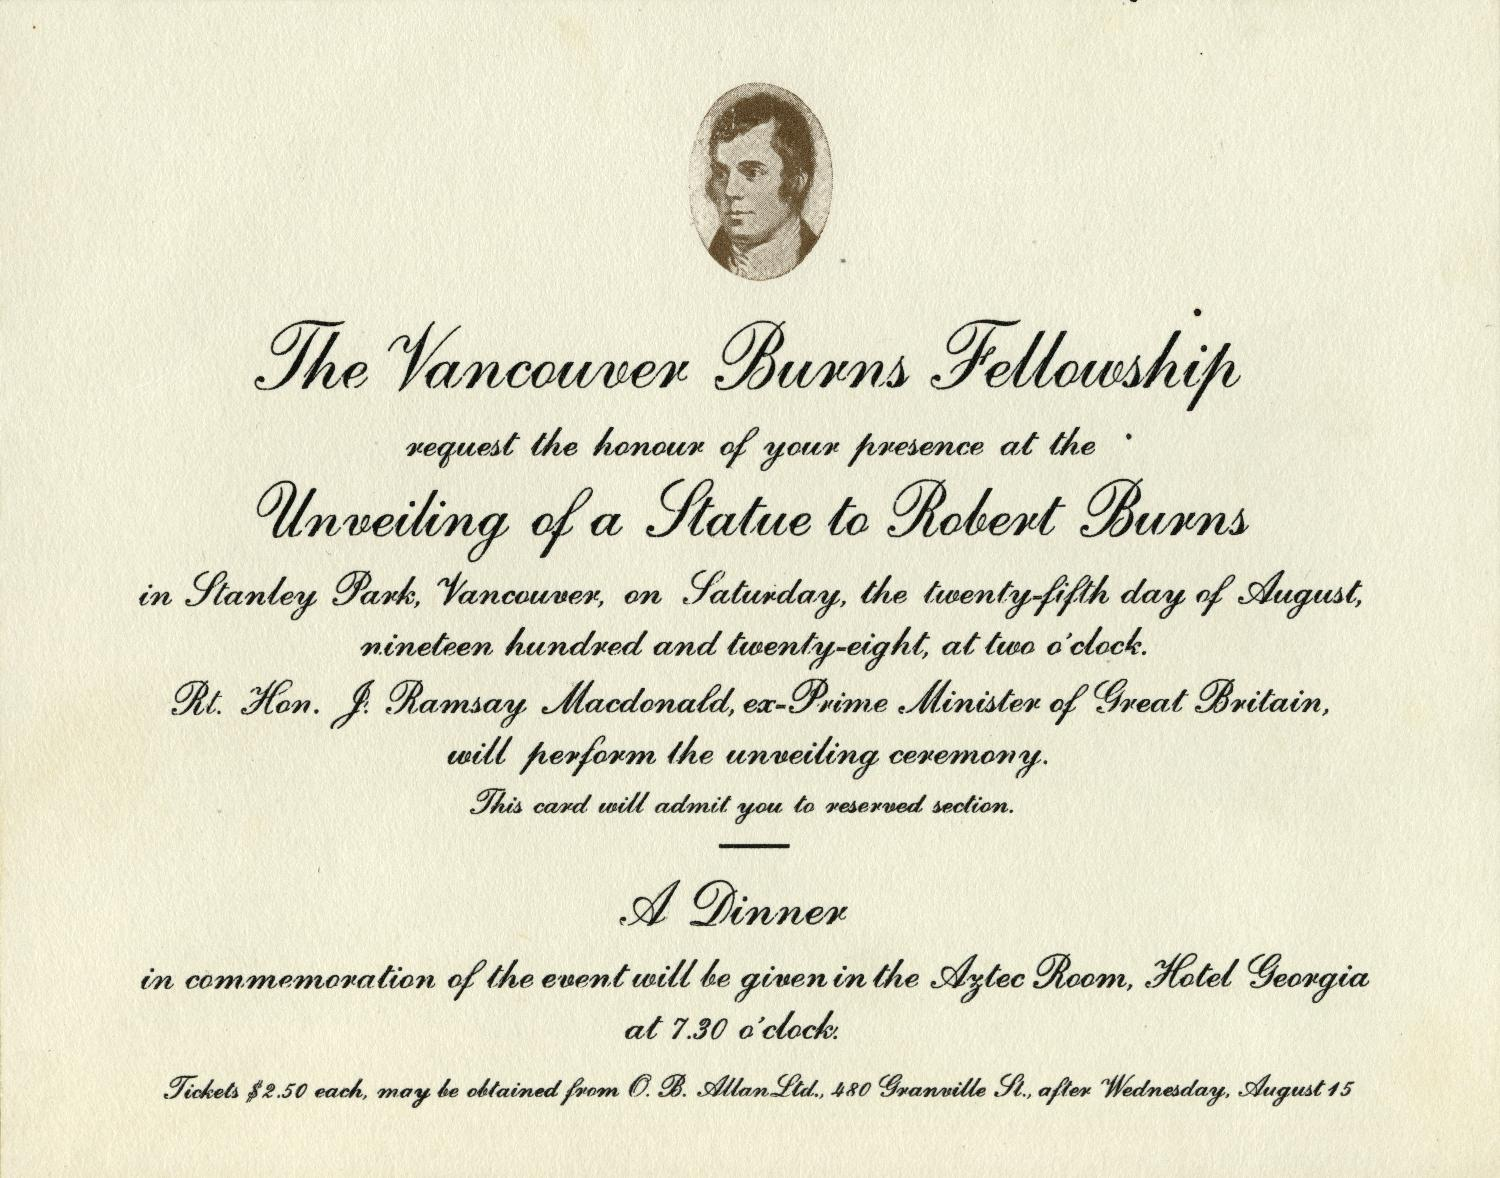 "Invitation to the unveiling and the dinner at the Aztec Room of the Hotel Georgia. From the file ""Societies - Vancouver Burns Fellowship"" in reference code AM54-S23-1."